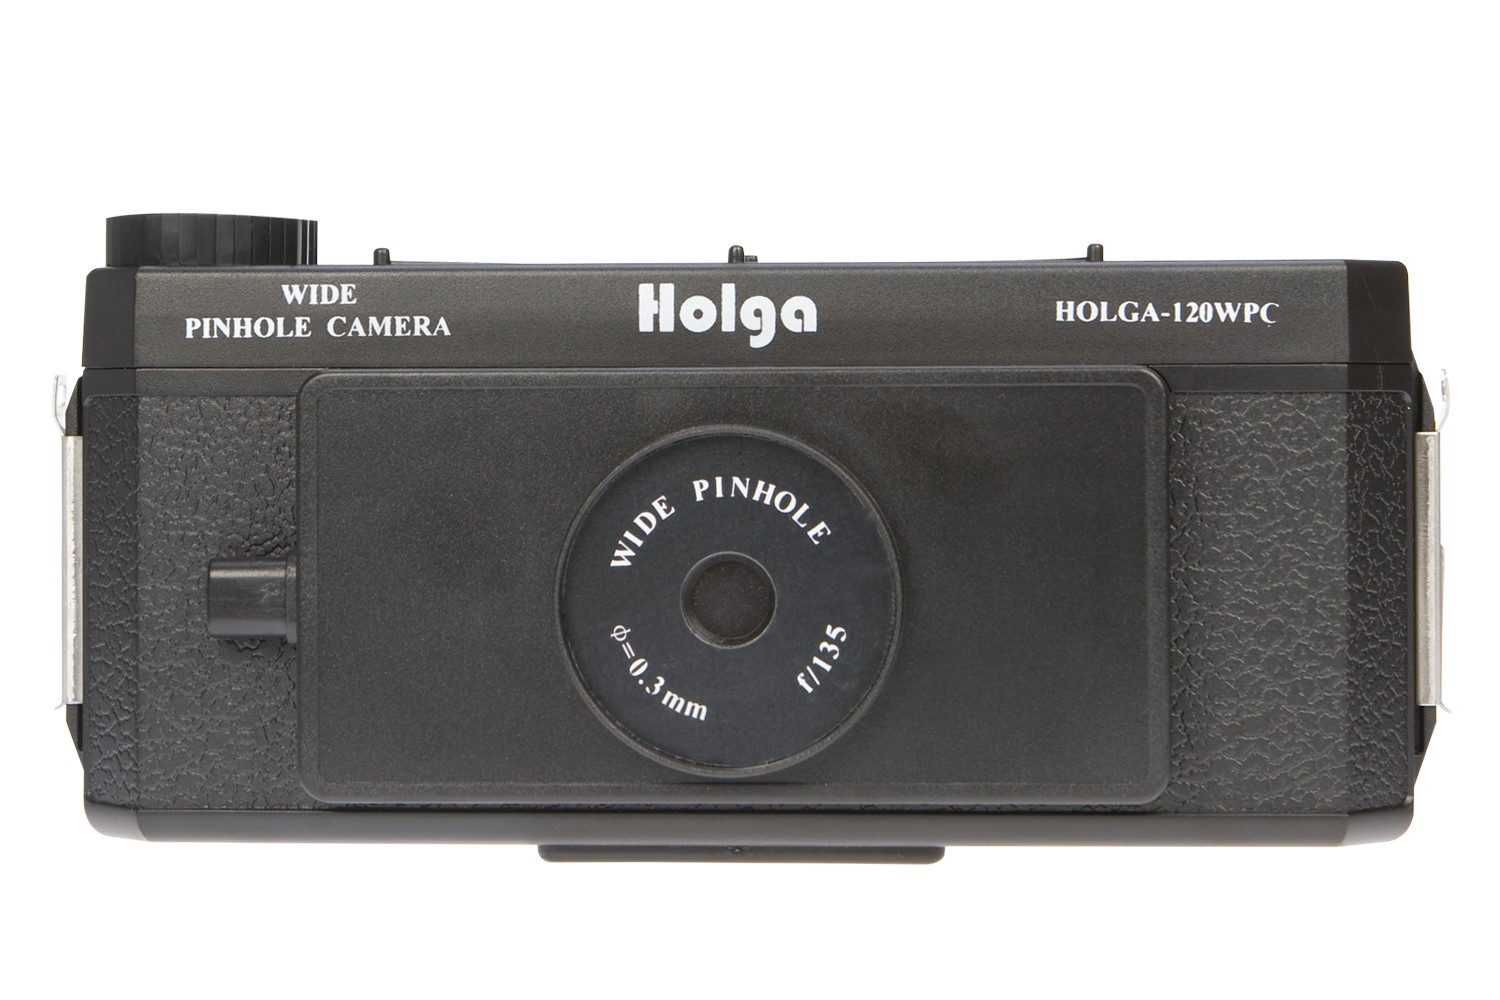 Holga 120 Wide Pinhole Camera